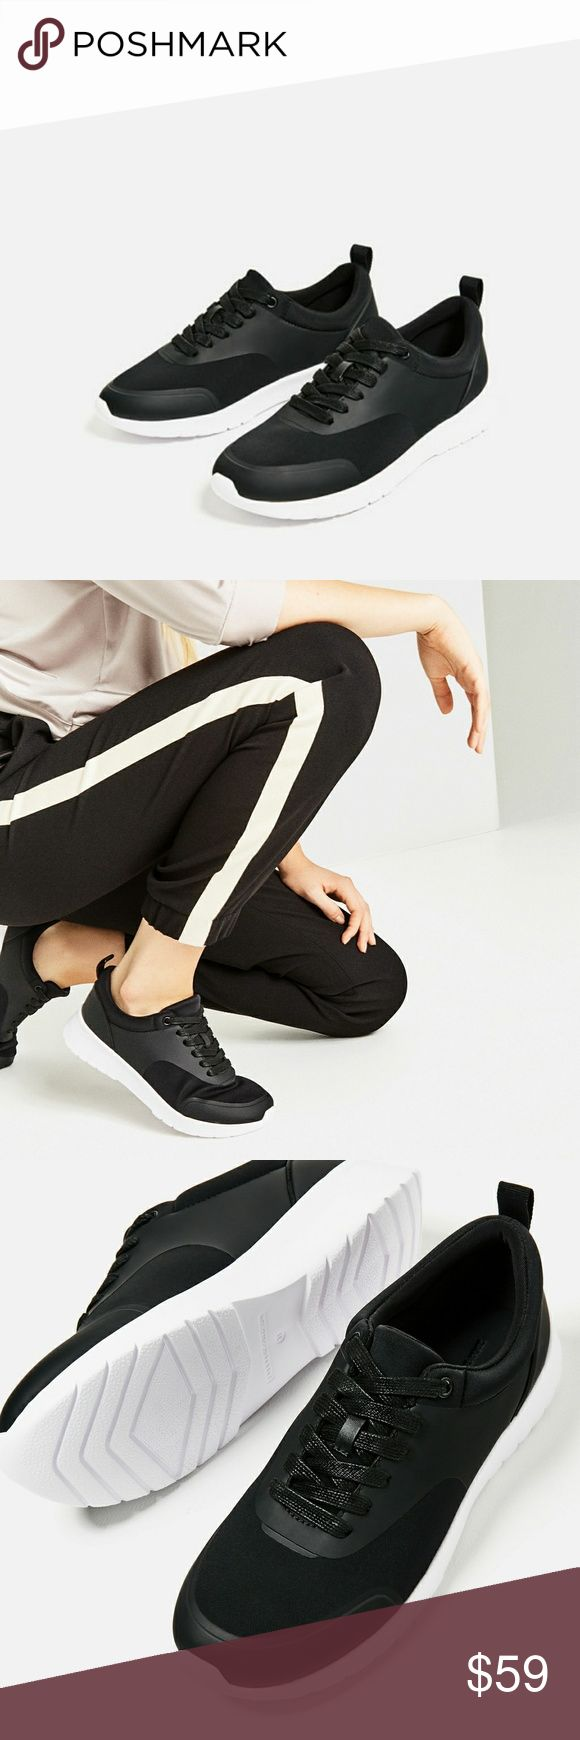 """Zara sneakers (6720) New with tag. EUR 38 US 7.5. Upper 70% Polyurethane thermoplastic 30% nylon. Lining 100% nylon. Sole 100% ethylene vinyl acetate. Slip sole 100% nylon.  Black sneakers. Contrasting matetial detail. Pull tab on the heel. Contrasting sole.  Height 3.5 cm/ 1.3"""" Zara Shoes Sneakers"""